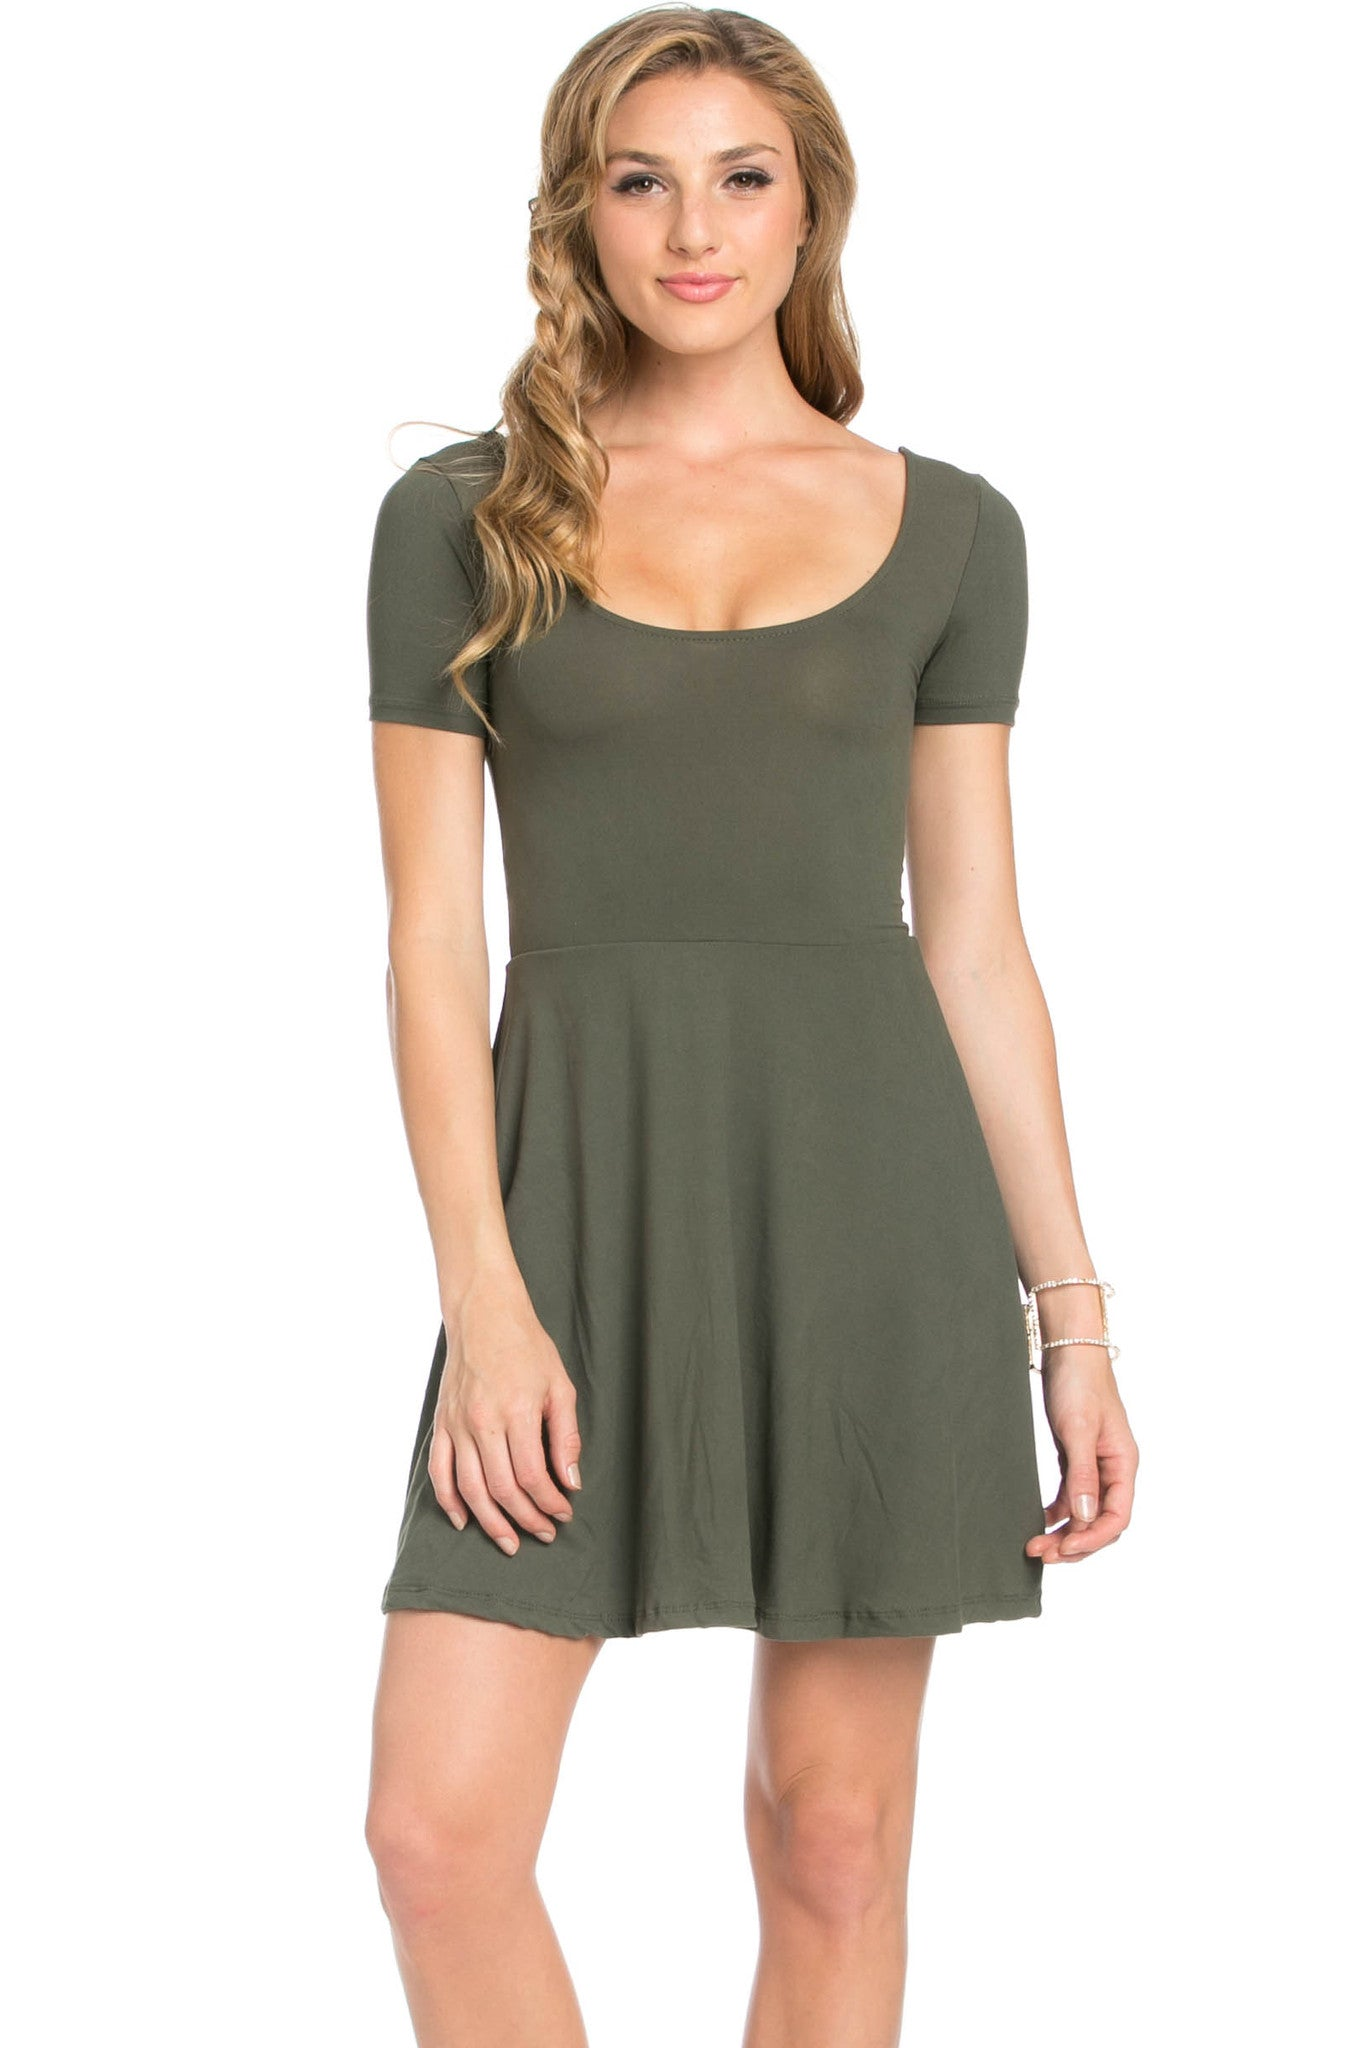 Micro Suede Olive Mini Dress - Dresses - My Yuccie - 2